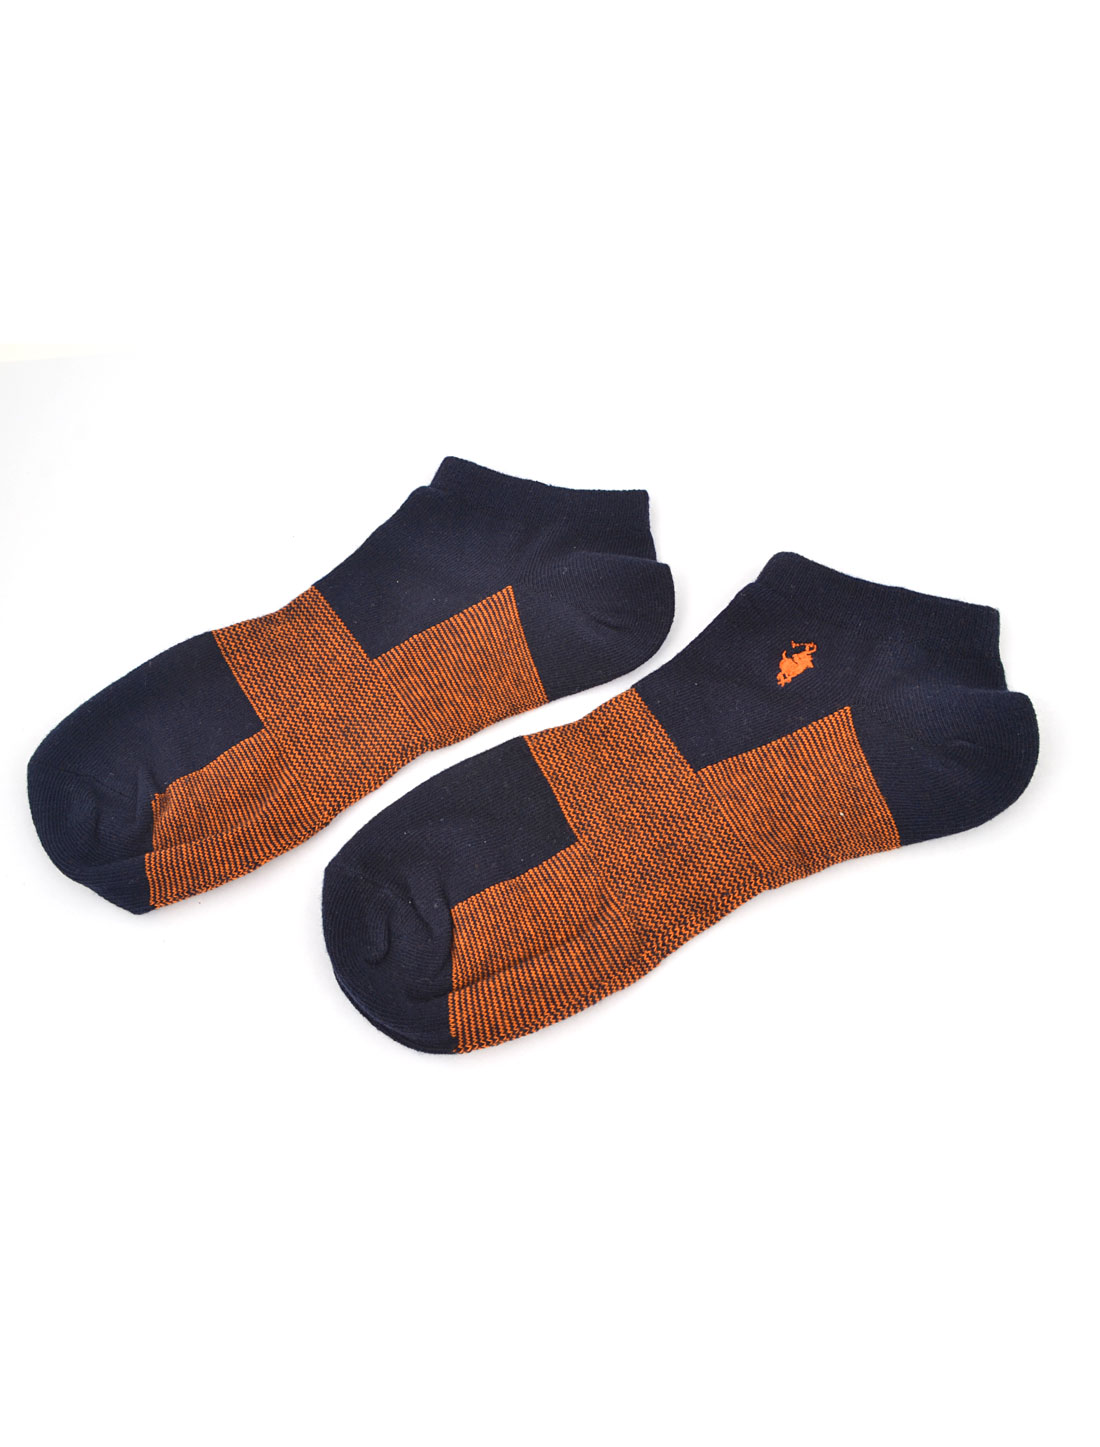 Pair Sport Elastic Cuff Low Cut Ankle Socks Navy Blue Orange for Man